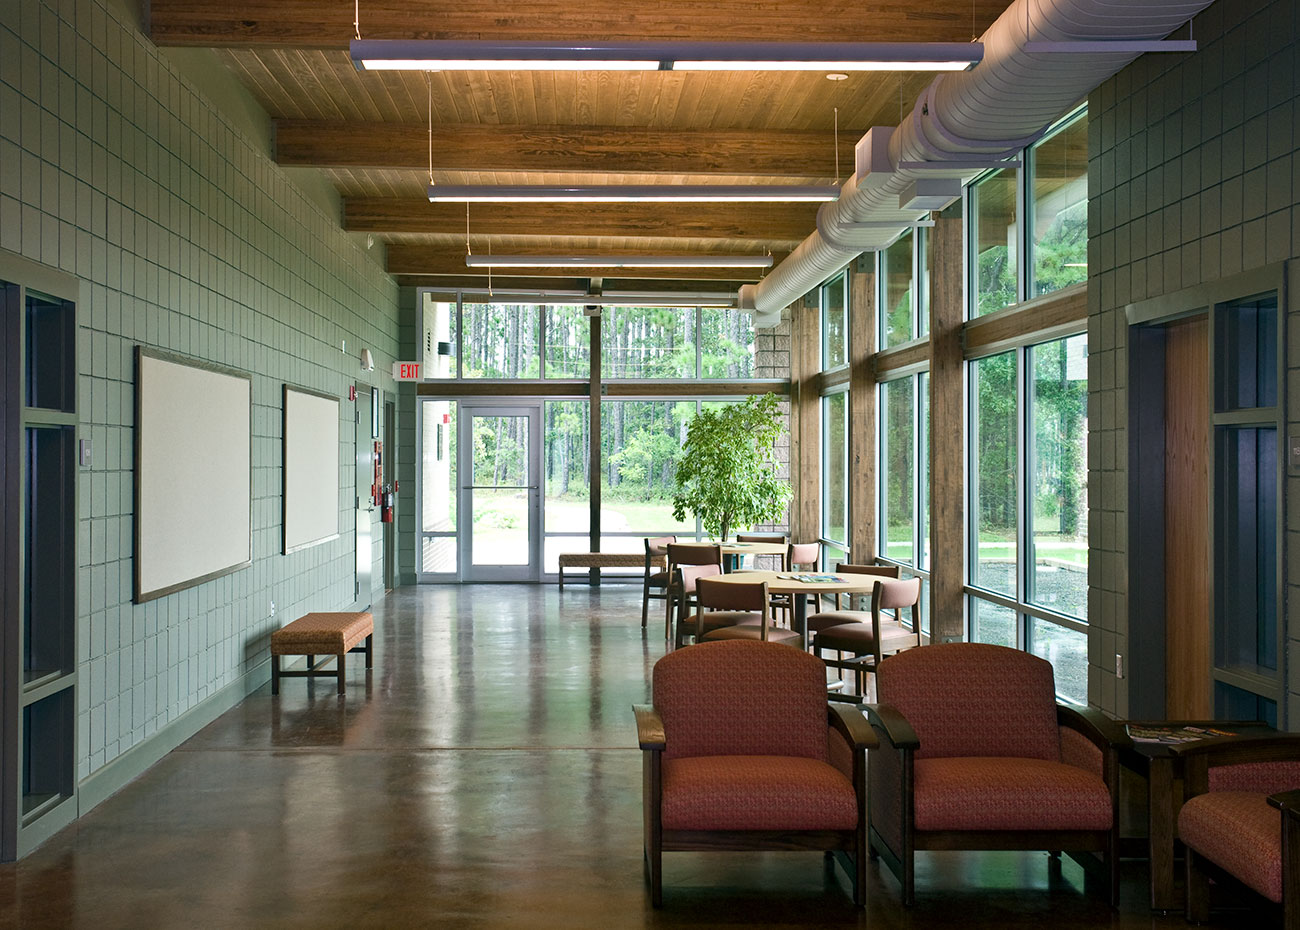 A window-lined interior room at the BCC Applied Plant Science building